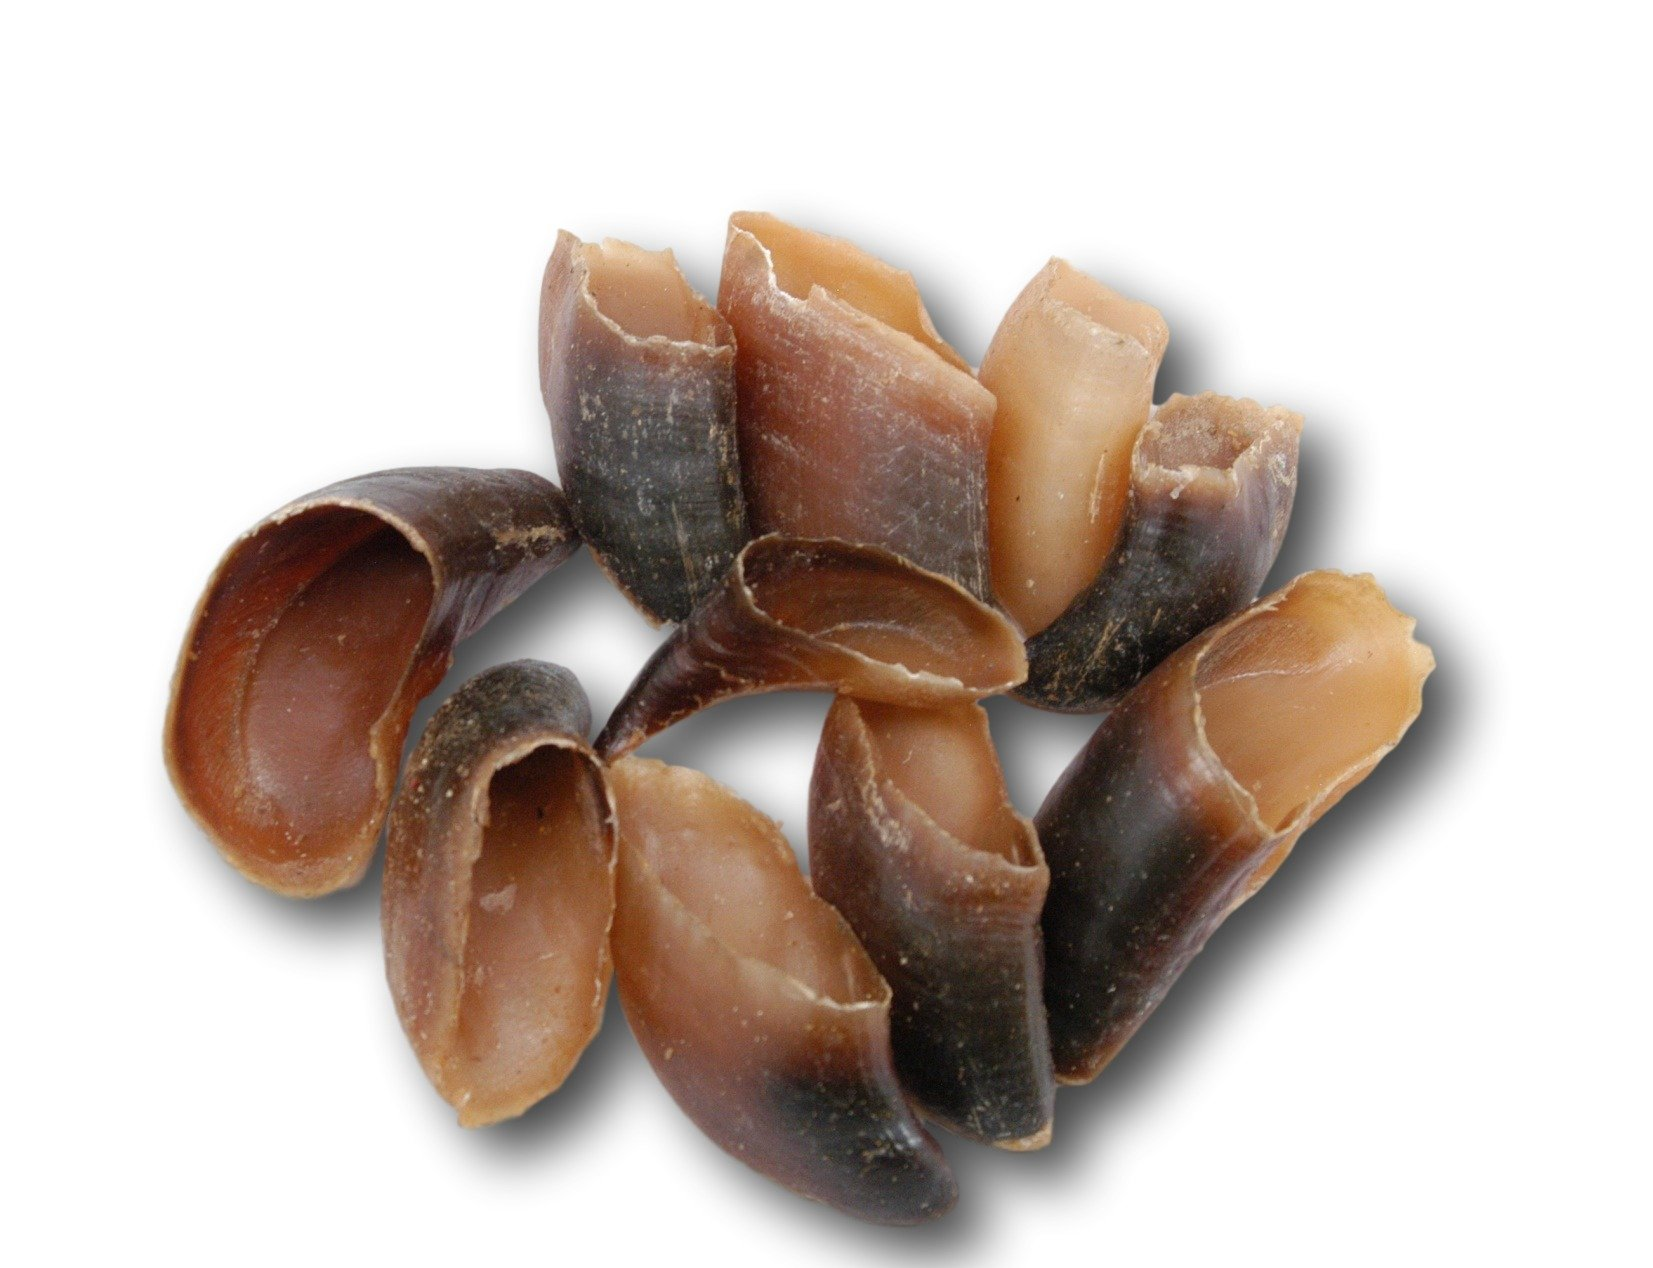 Natural Cow Hooves for Dogs - QTY 25 Made in the USA Bulk Dog Dental Treats & Dog Chews Beef Hoof, American Made by Great Lakes Merchandise (Image #1)